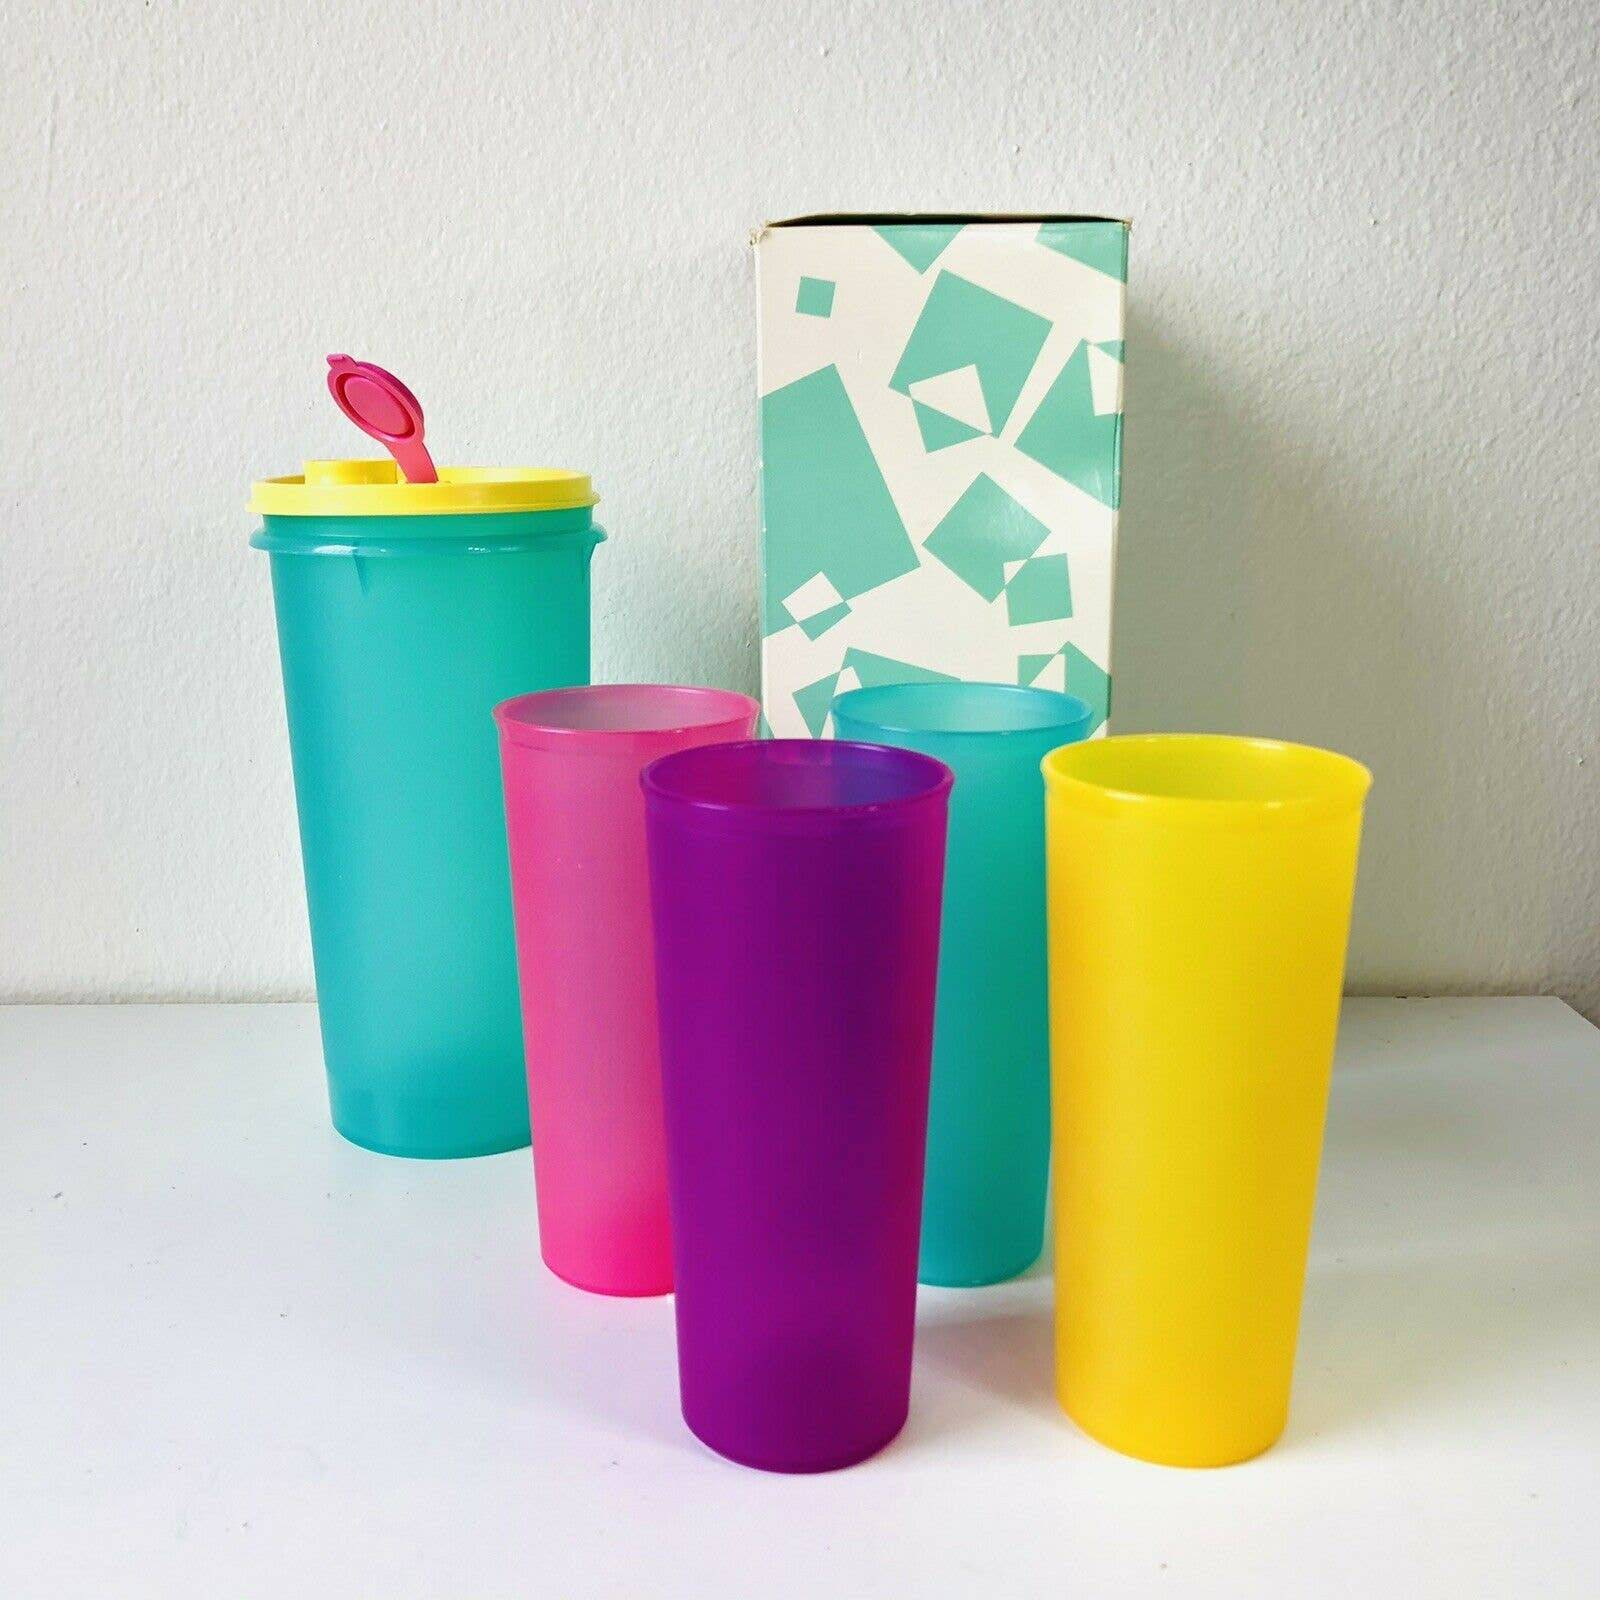 VTG Tupperware Pitcher & Tumblers Cups